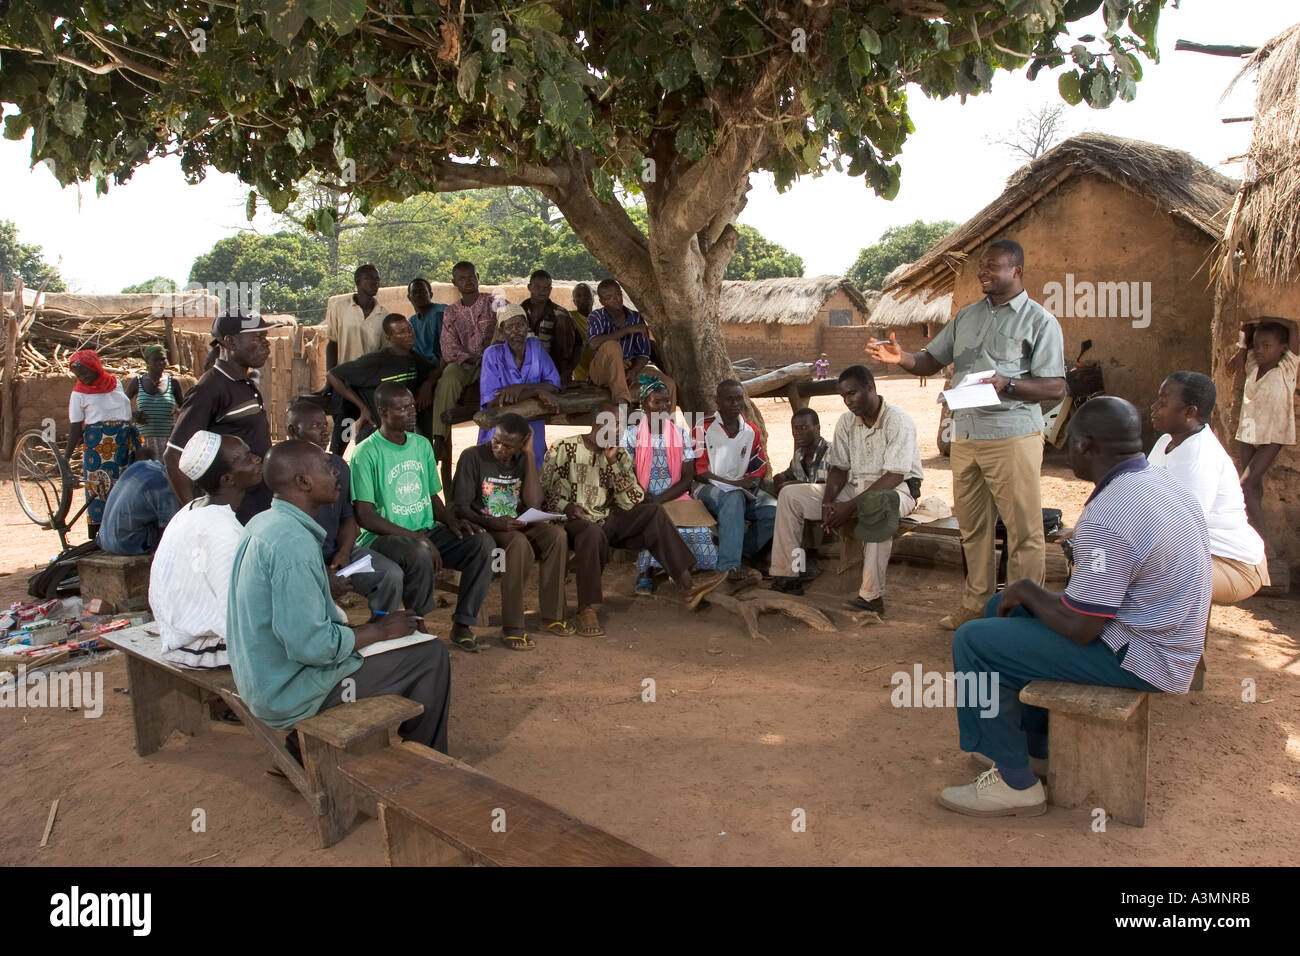 Villagers in Northern Ghana meeting to discuss conservation and environmental concerns within the village community. - Stock Image